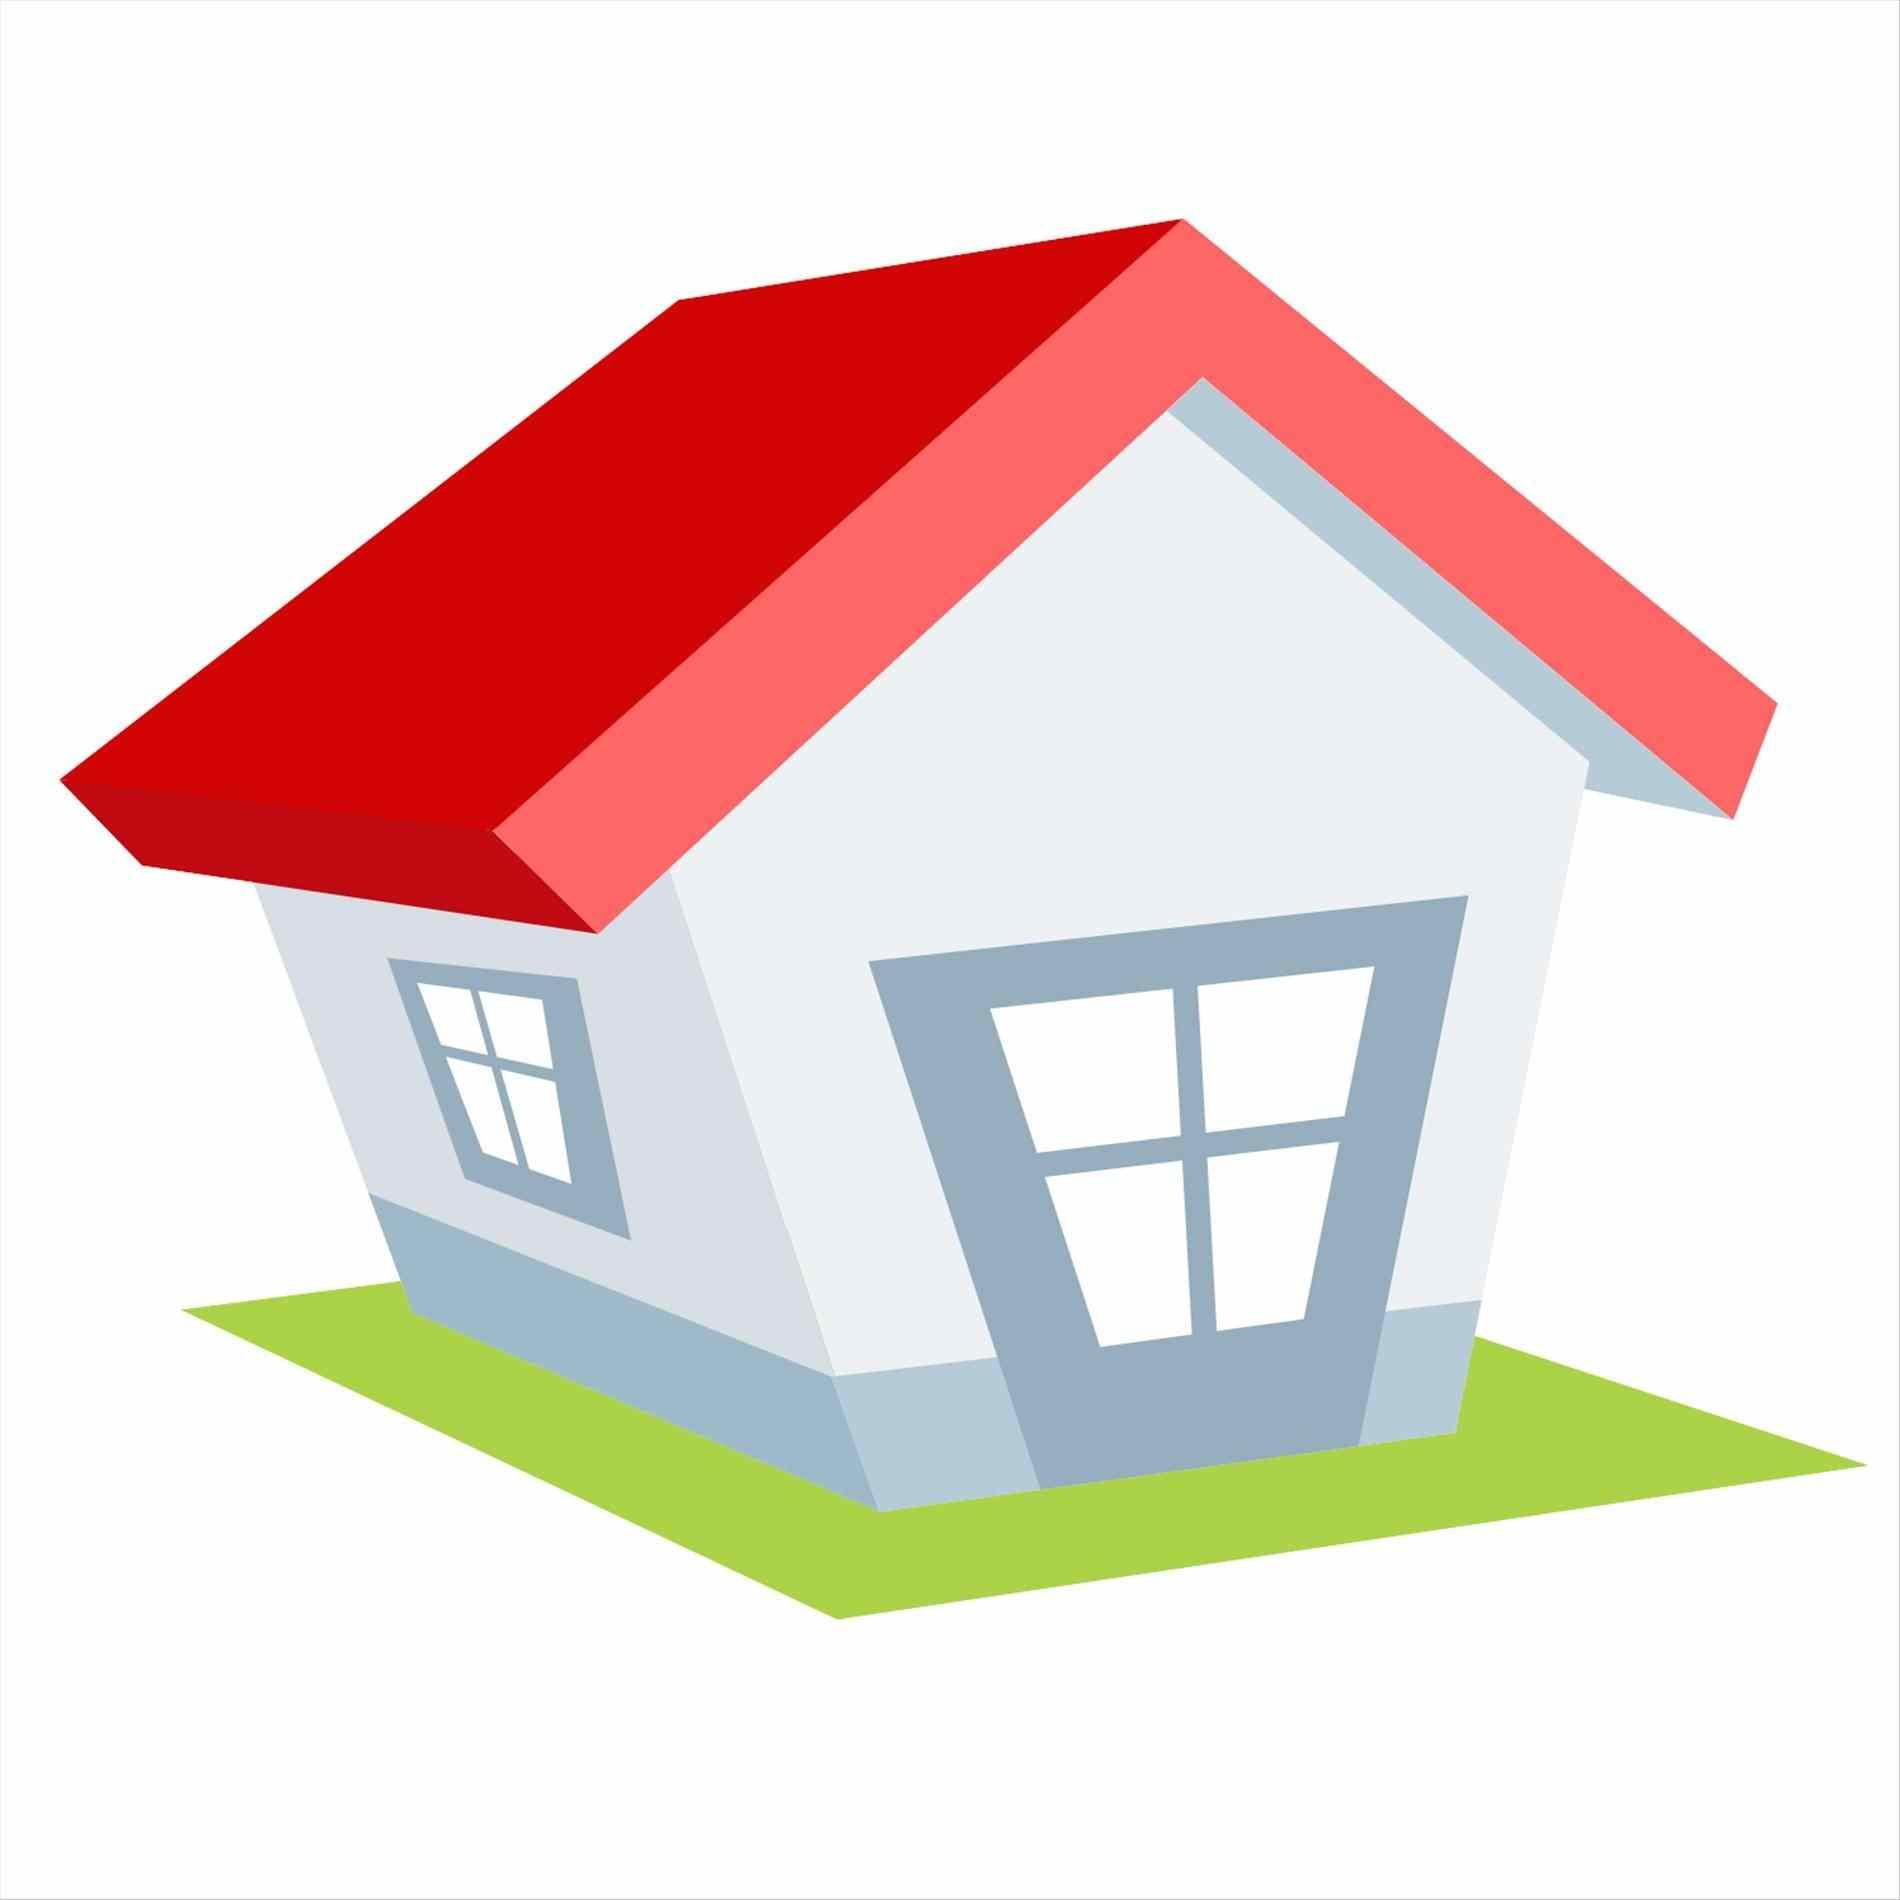 Roof clipart roof house. Free download best on